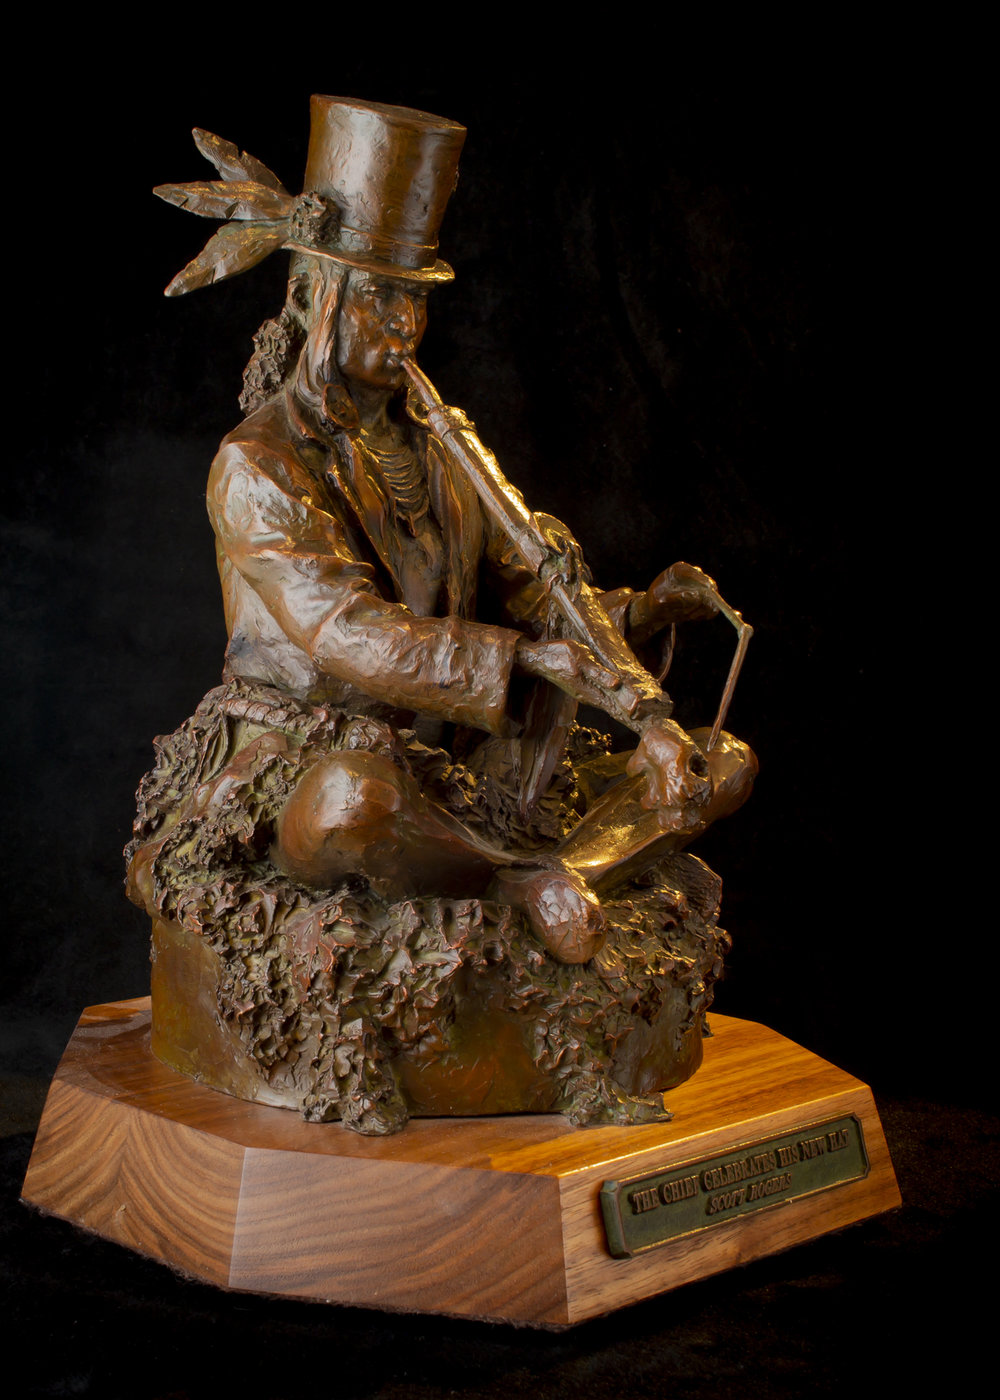 """The Chief Celebrates His New Hat (Small) 